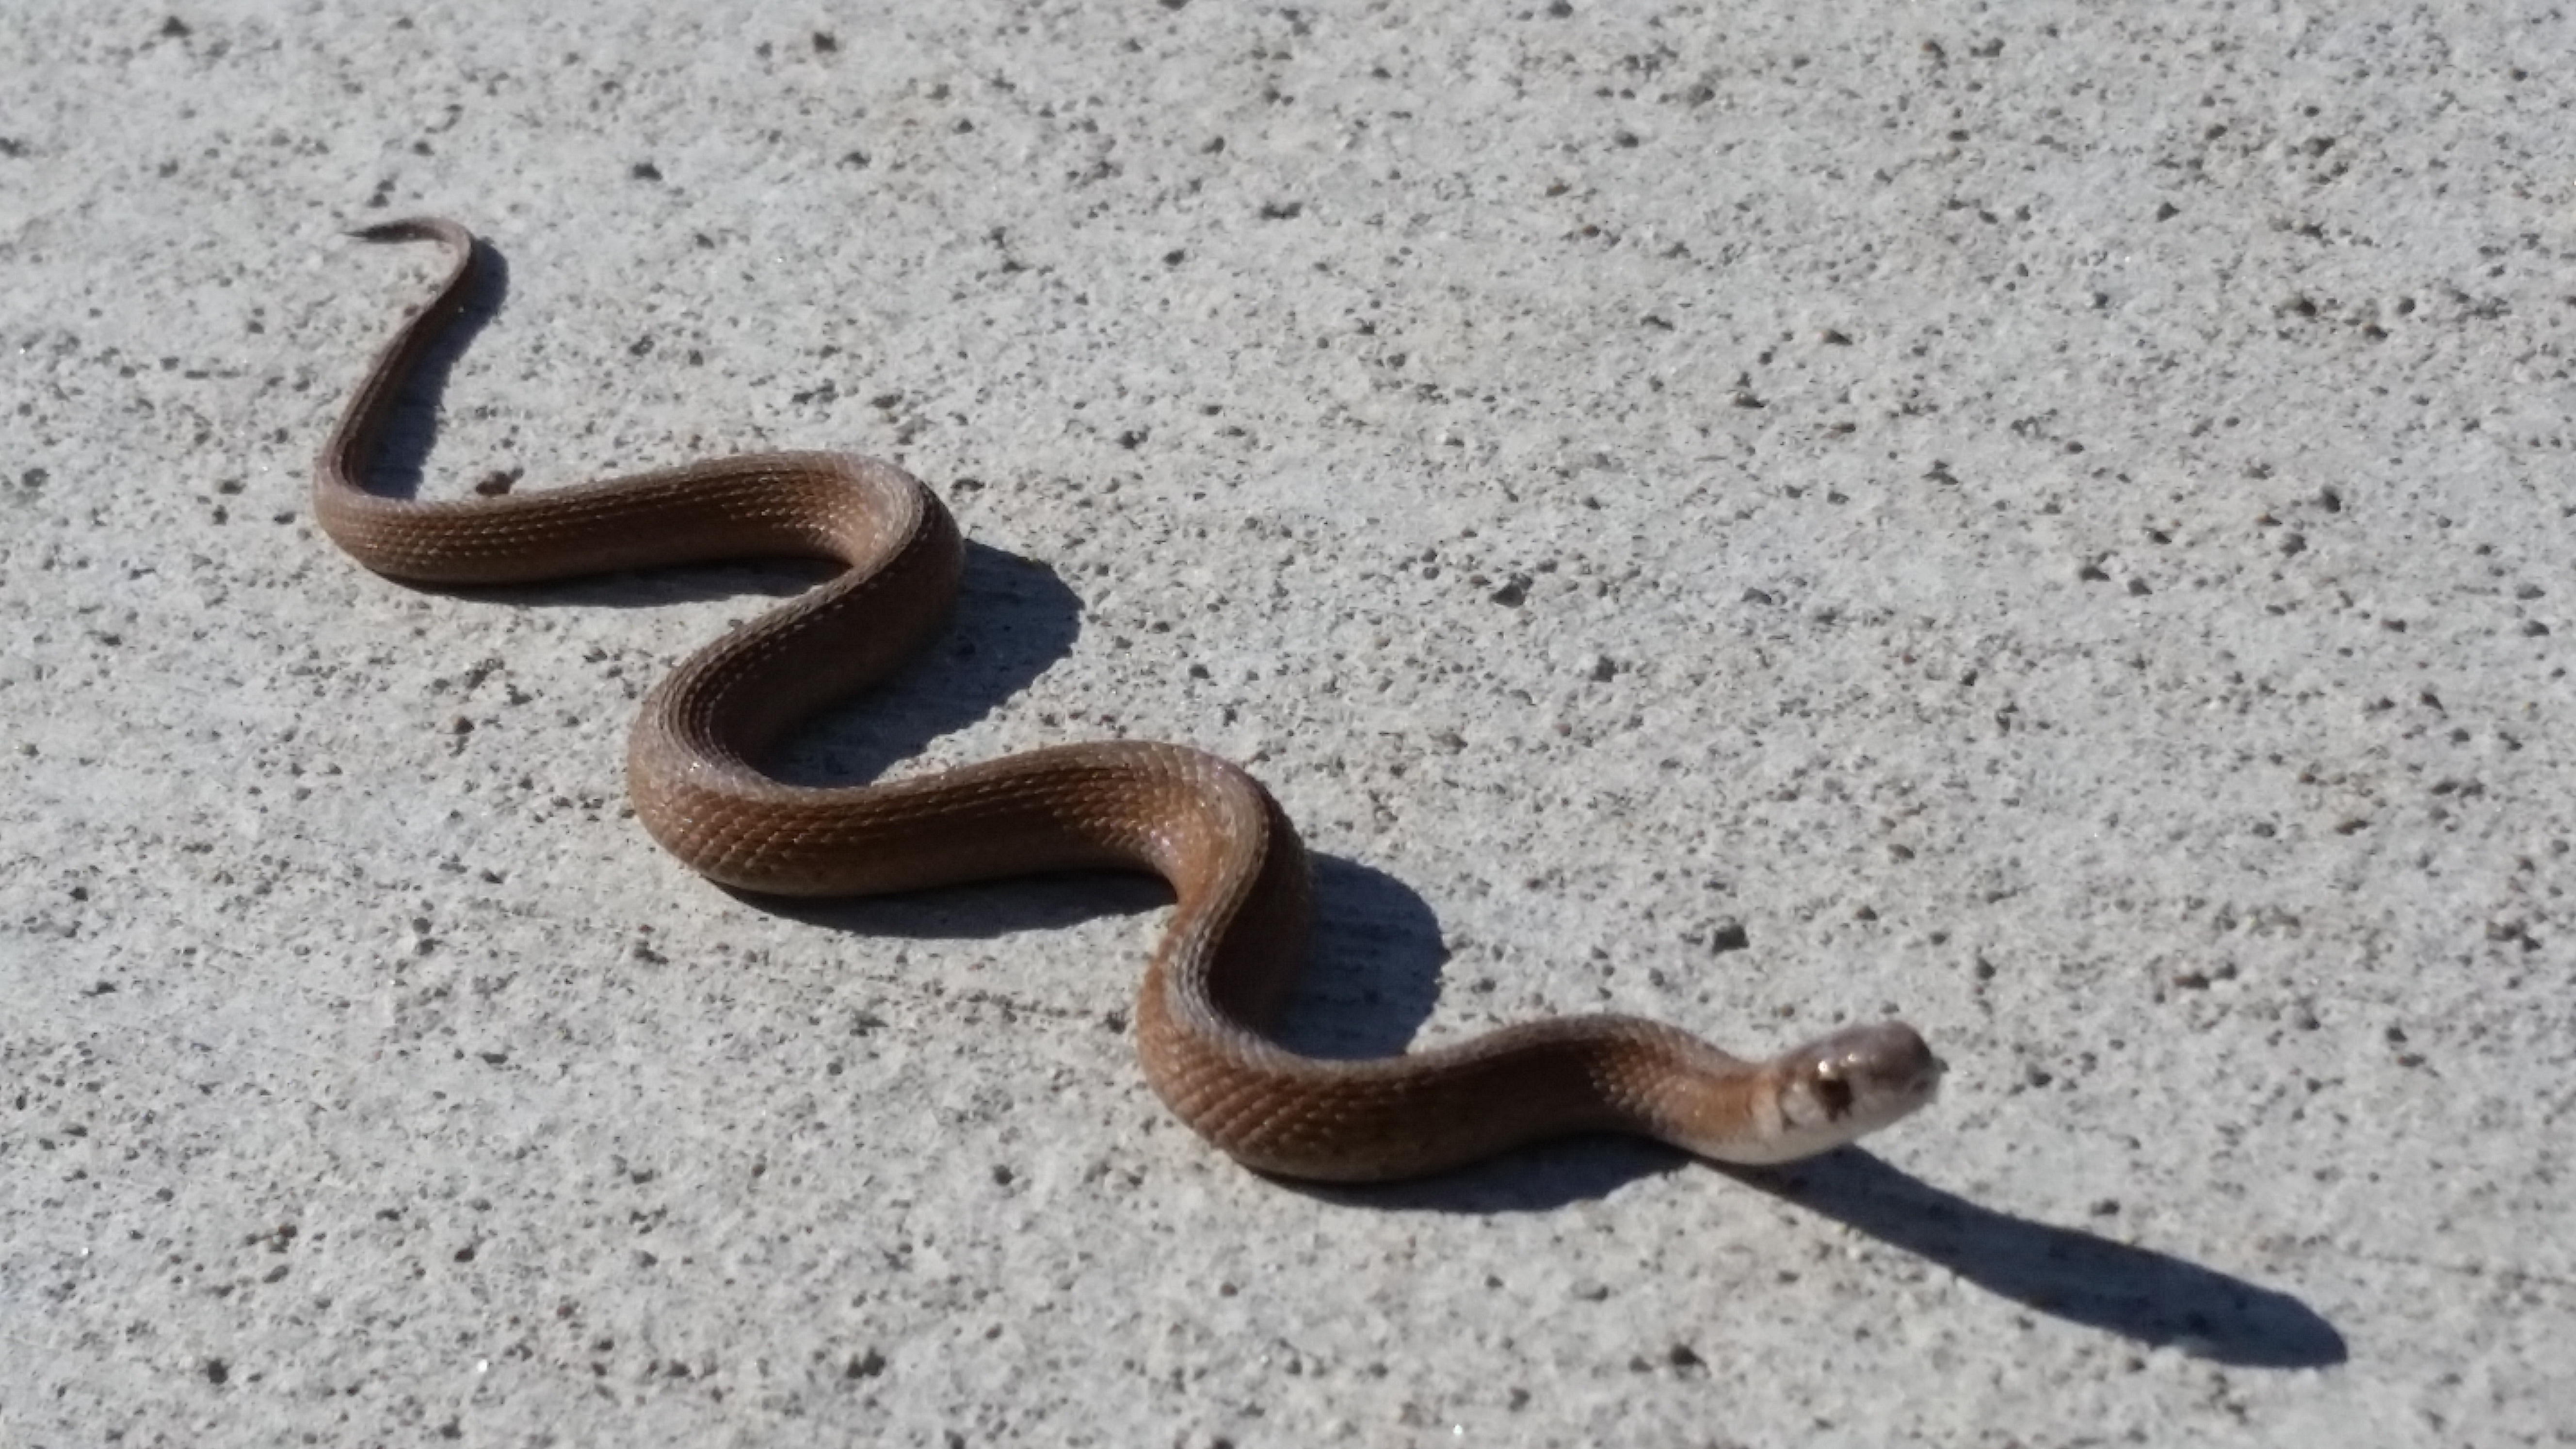 A snake wriggles away near the IARC Office, Technical and Education Building. Photo: Aaron Sauers, OPTT